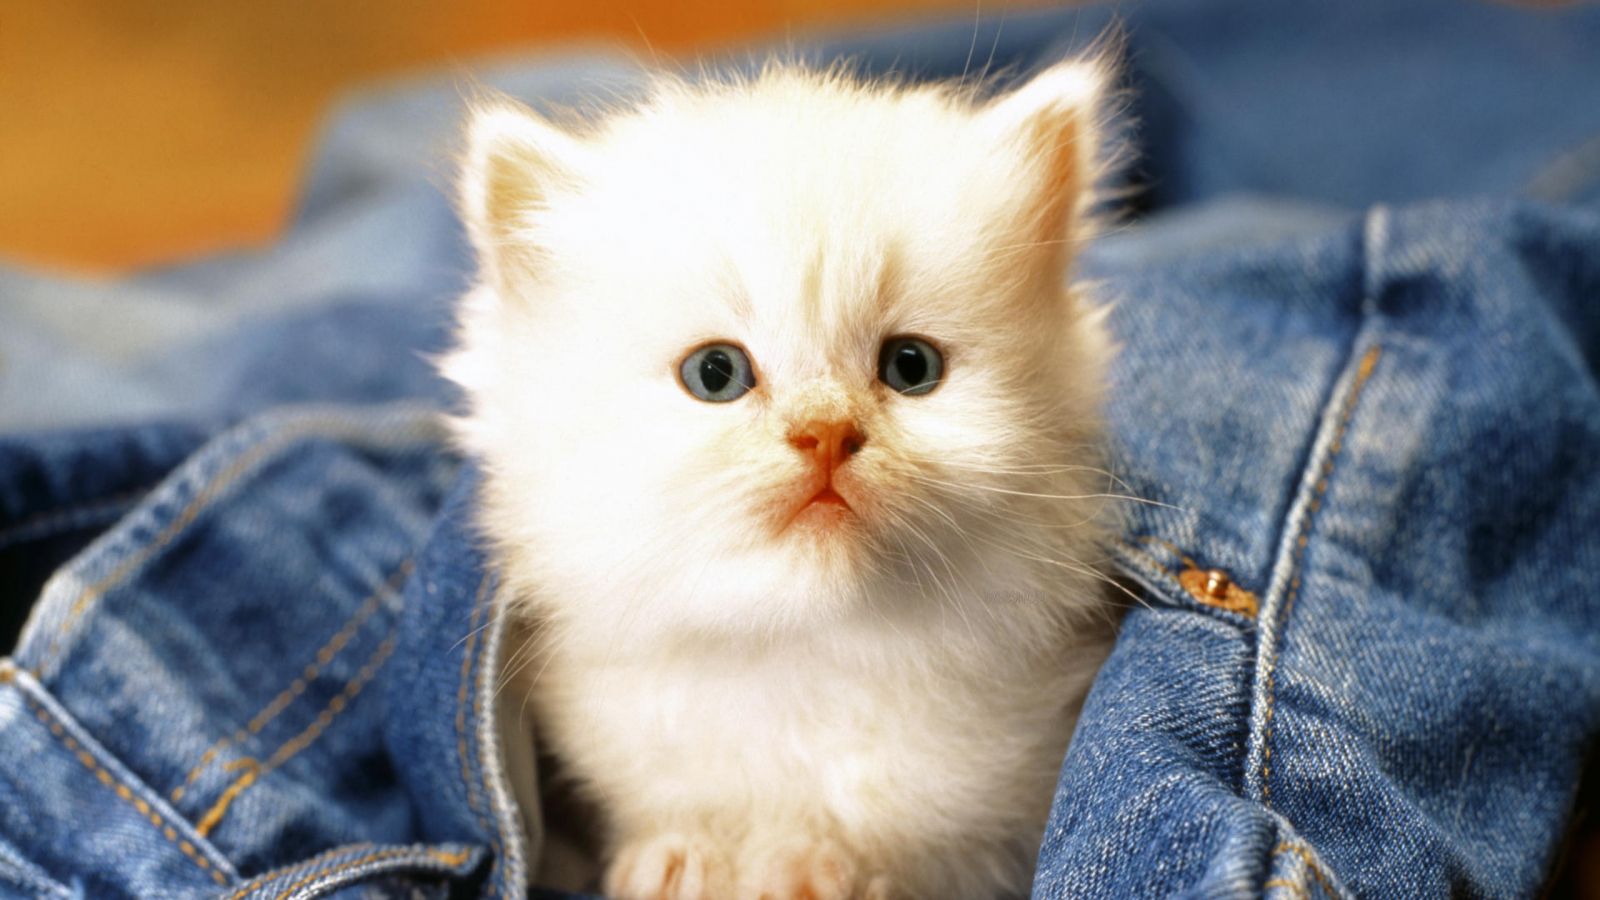 Free Download Download Cute Cat Baby In Hd And Widescreen Resolutions Wallpaper 2560x1600 For Your Desktop Mobile Tablet Explore 48 Baby Cats Wallpaper Cats Wallpaper Cute Kitten Wallpapers For